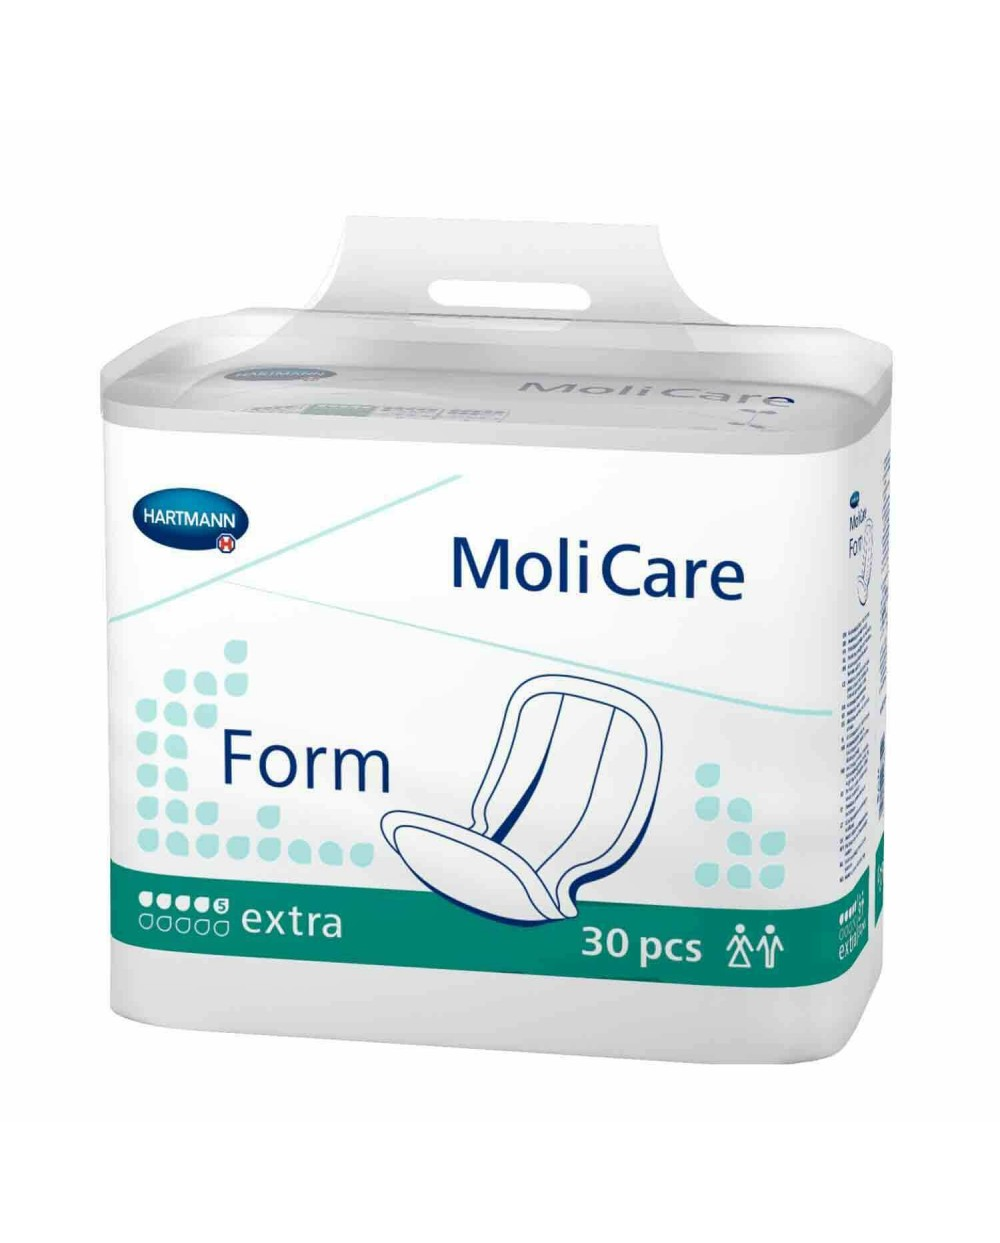 Hartmann Molicare Form Extra - 30 protections